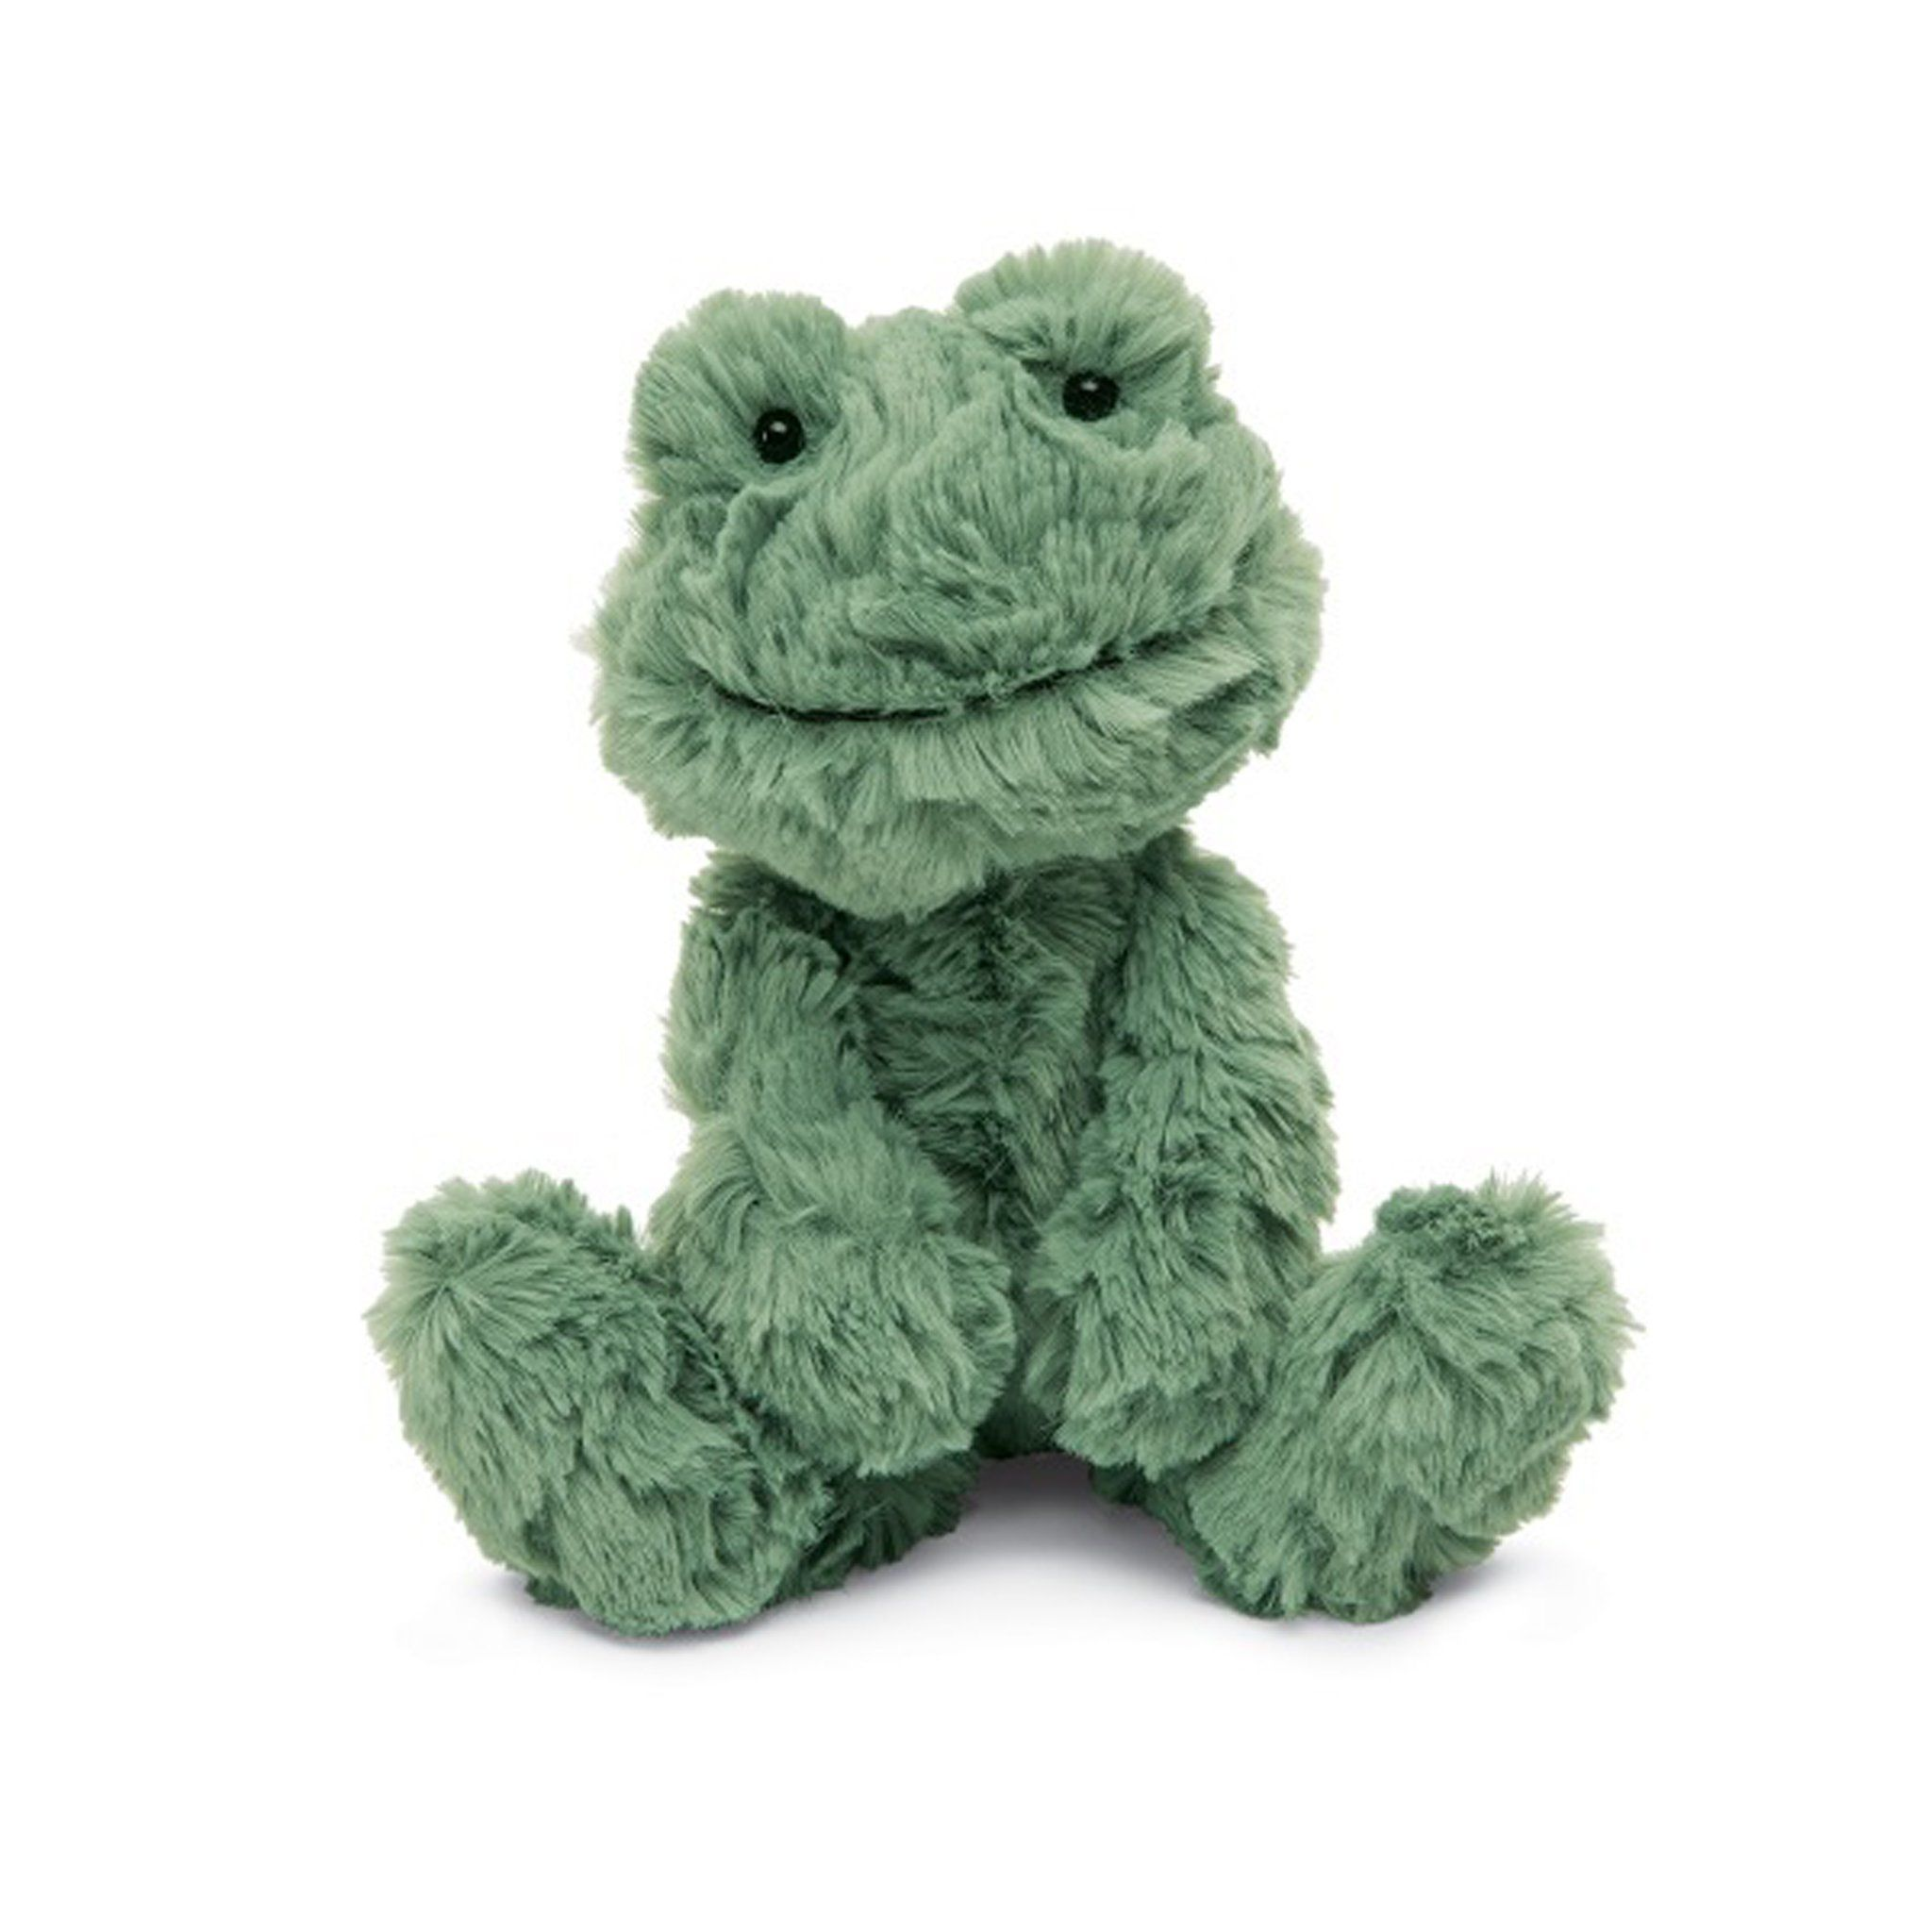 JellyCat Squiggle Frog in 2020 Cute stuffed animals